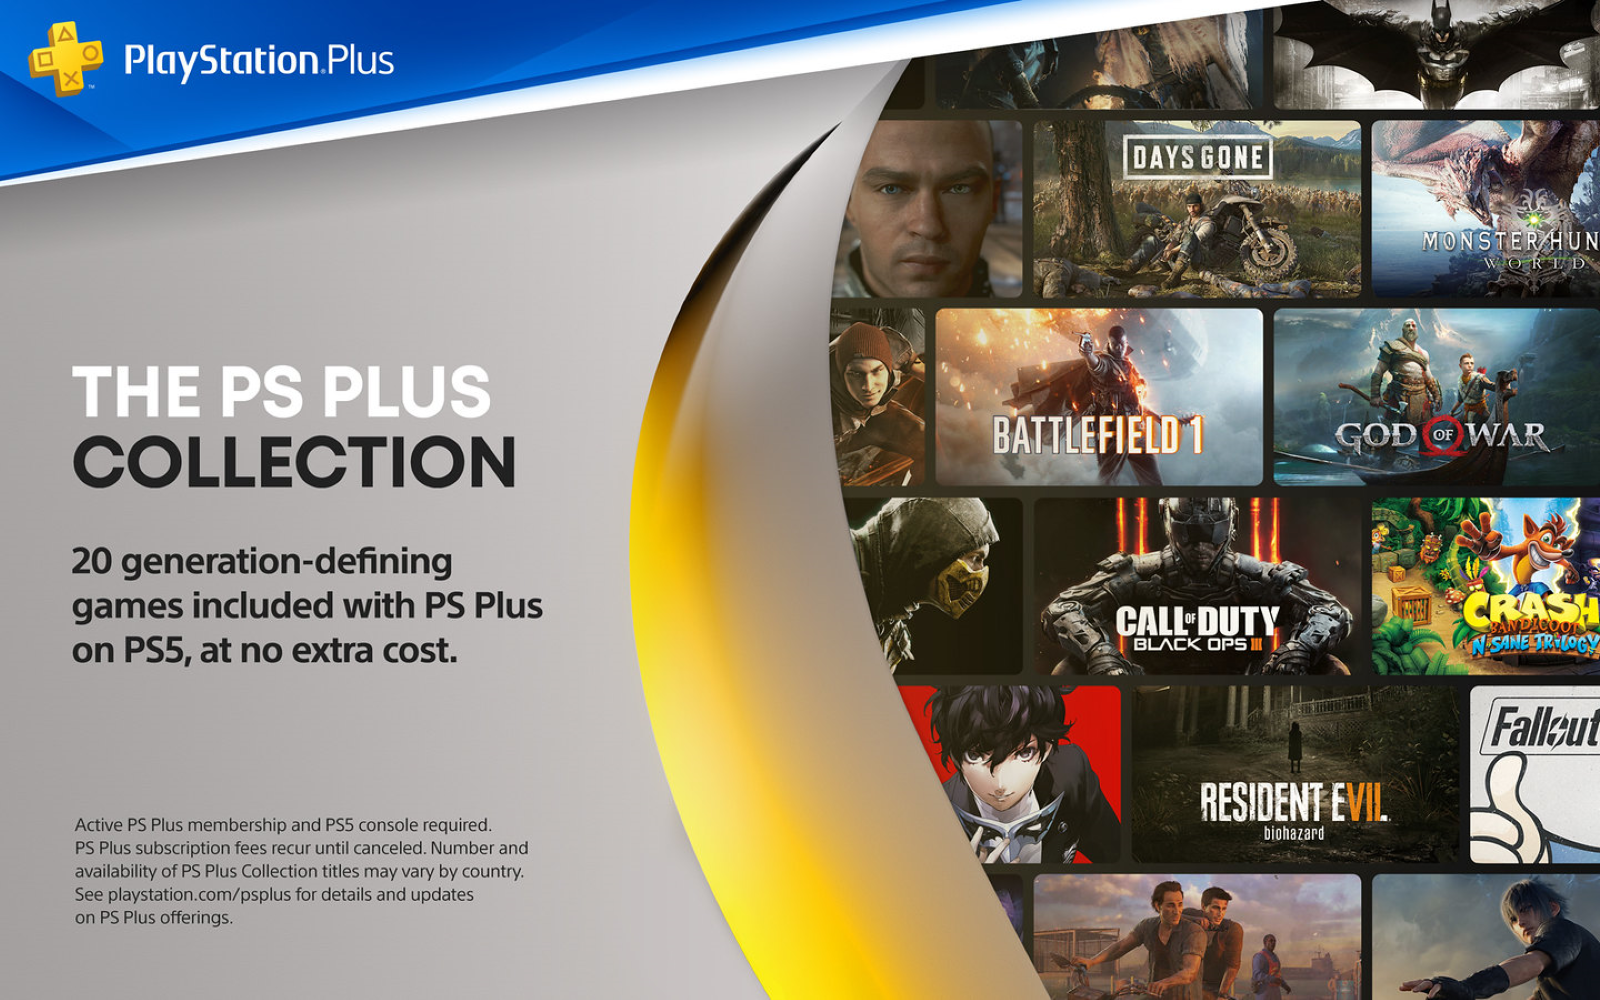 Crash Bandicoot N.Sane Trilogy And Black Ops III Added To PS Plus Collection